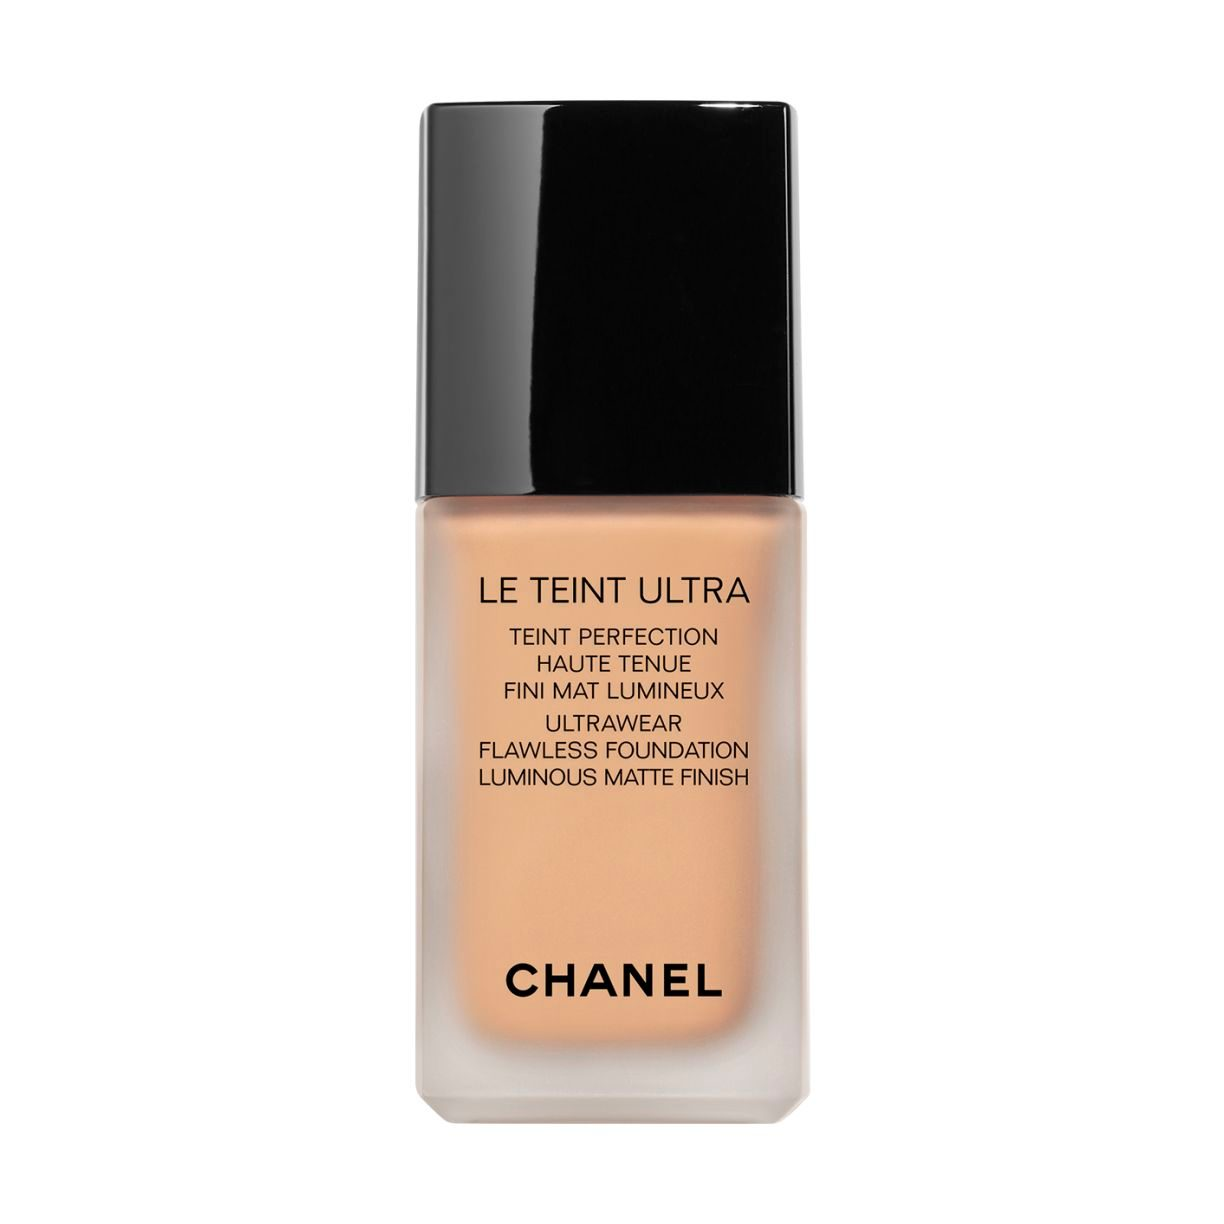 LE TEINT ULTRA ULTRAWEAR FLAWLESS FOUNDATION LUMINOUS MATTE FINISH 121 - CARAMEL